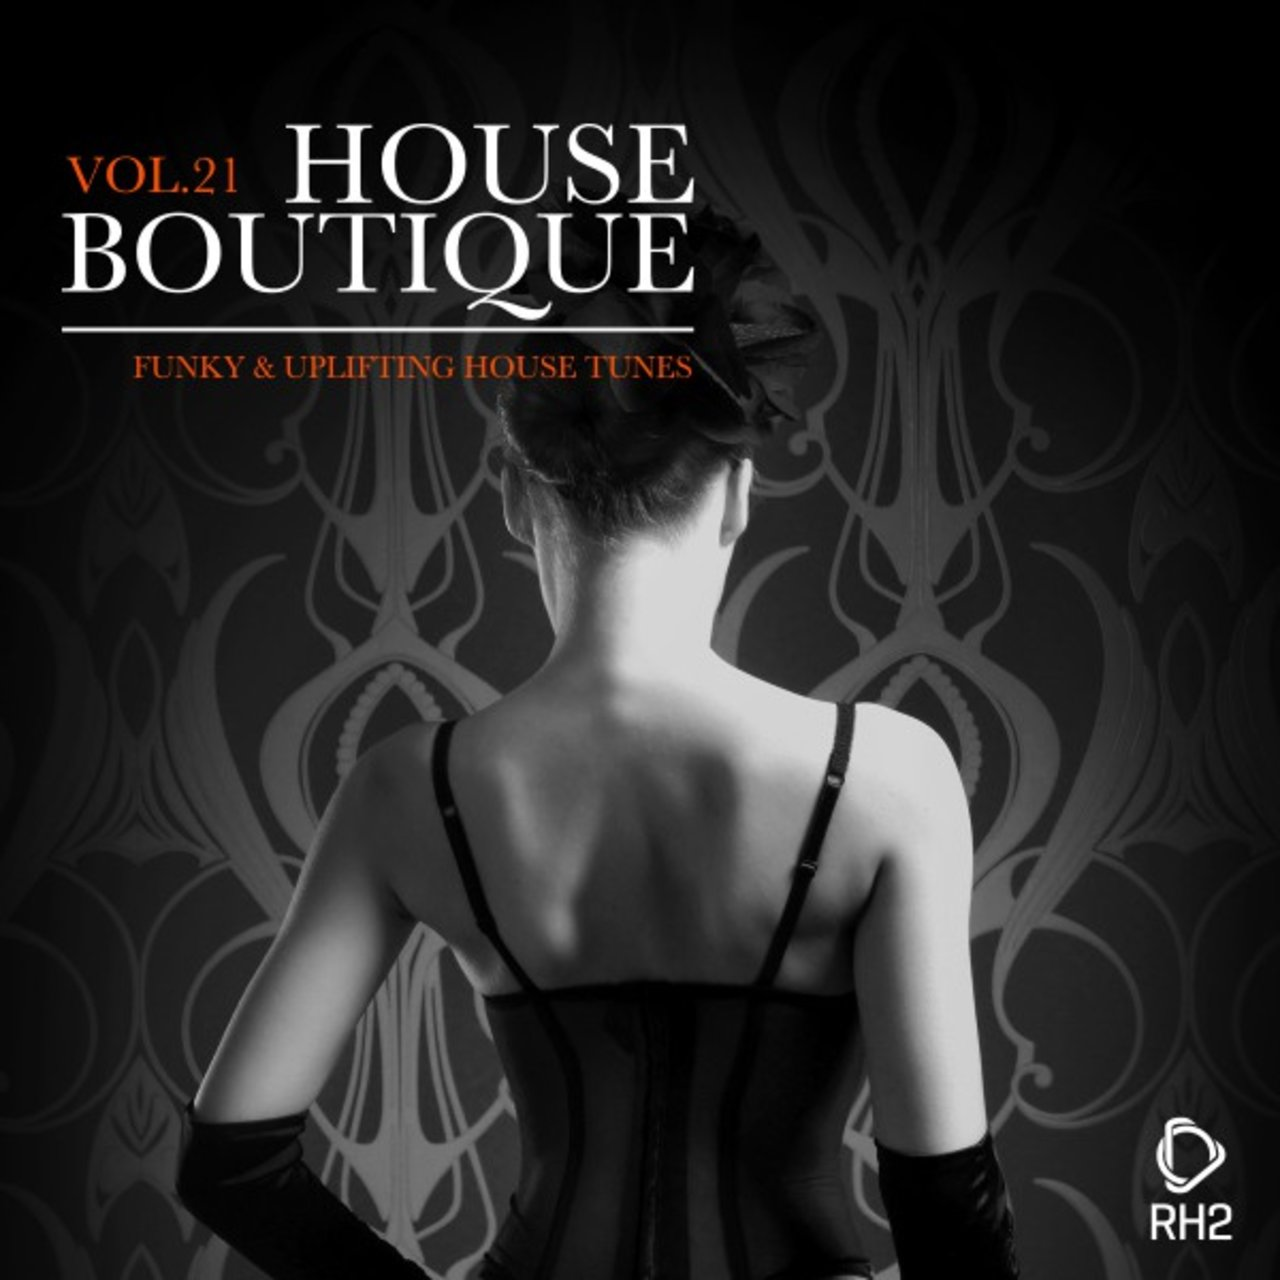 House Boutique, Vol. 21 - Funky & Uplifting House Tunes